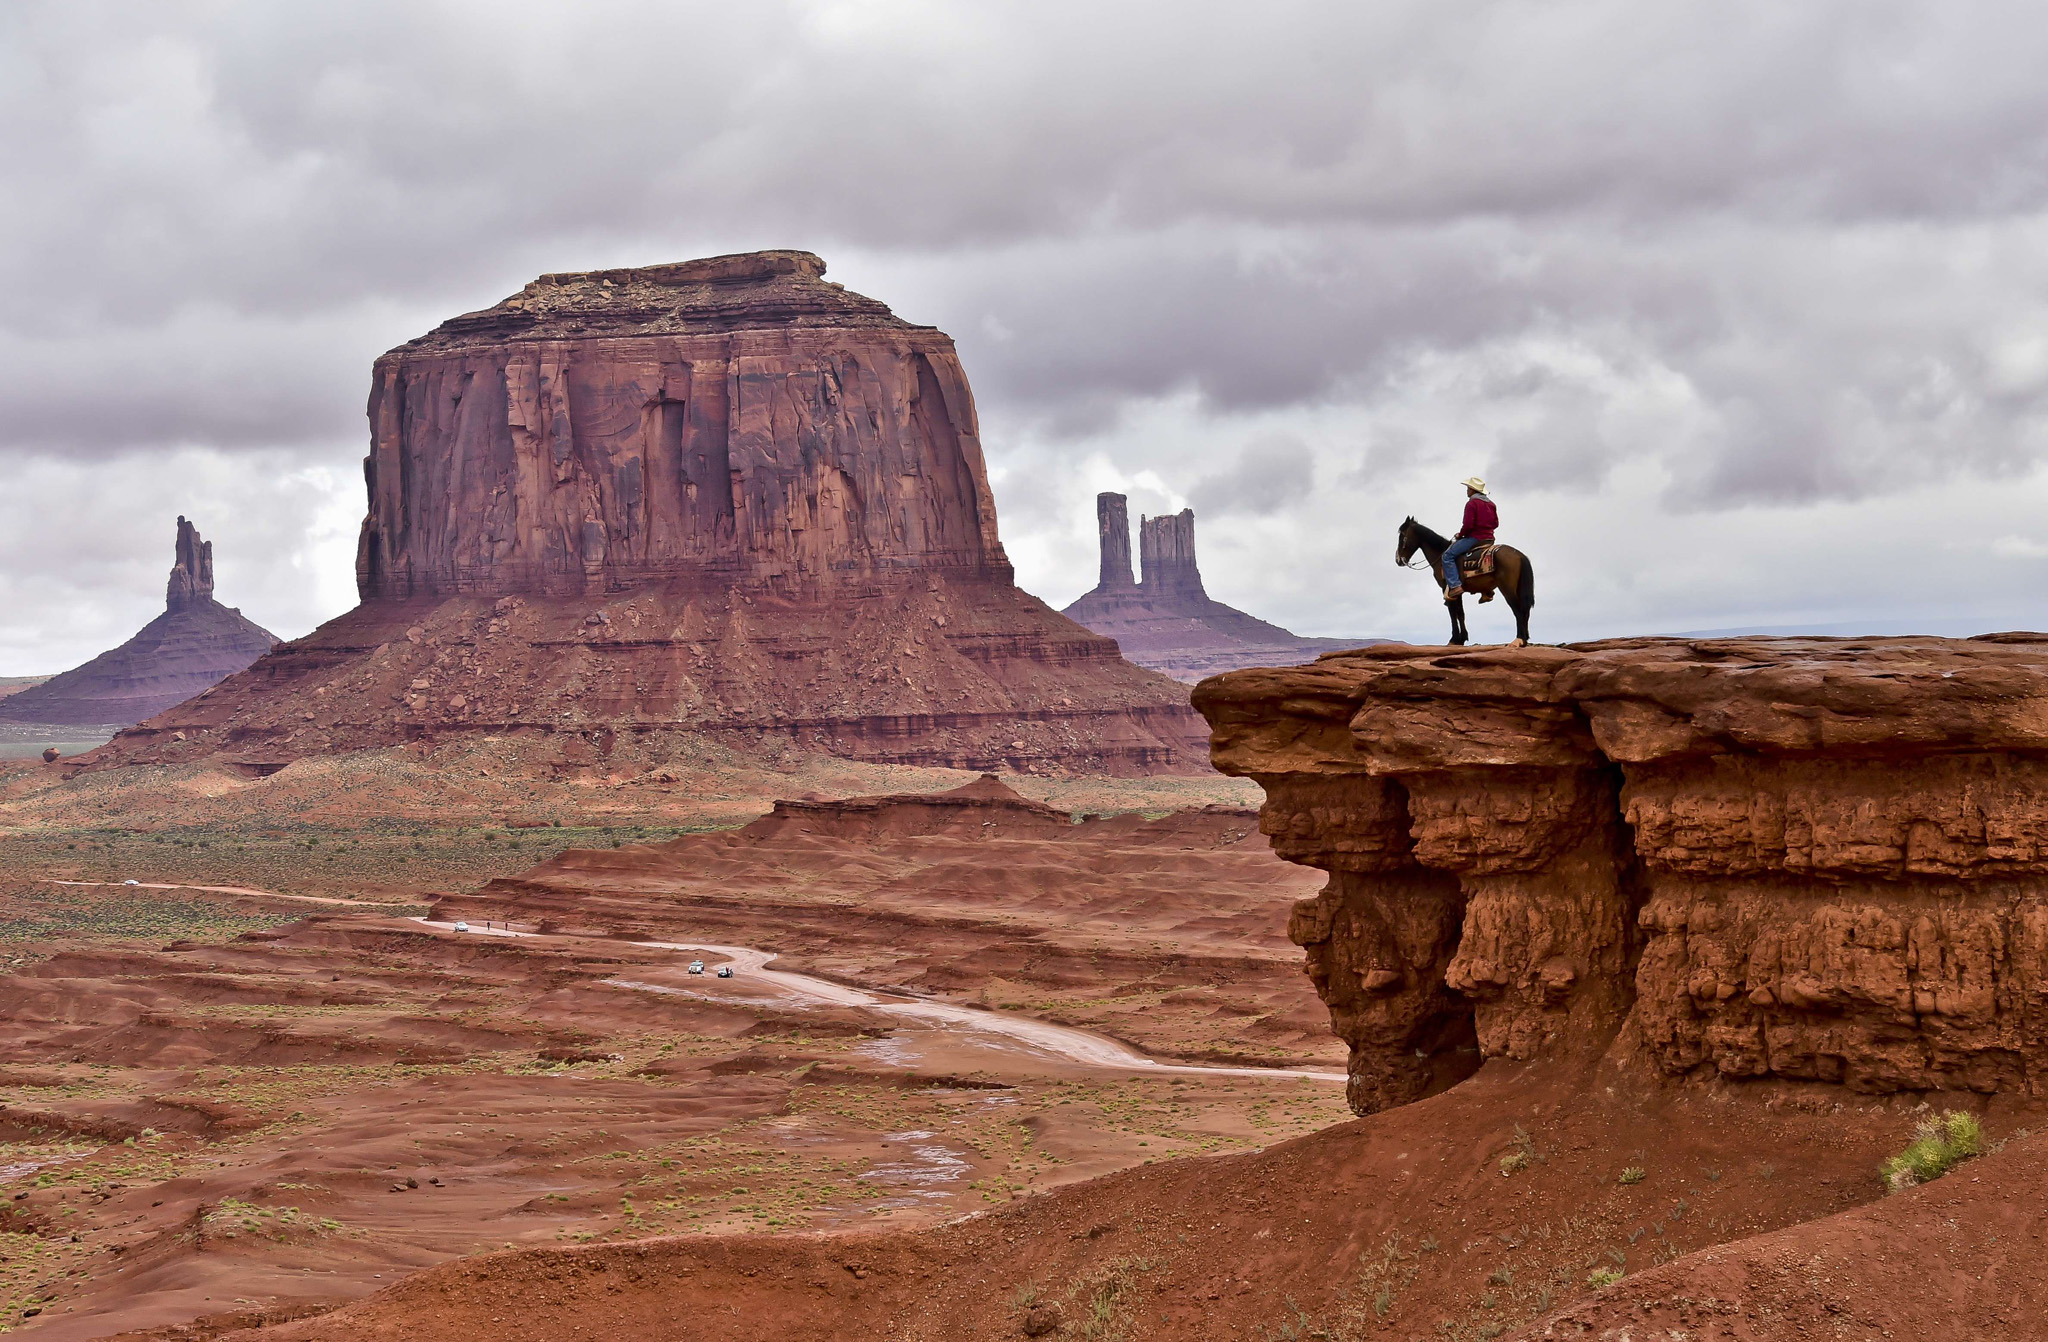 A Navajo man on a horse poses for touris...A Navajo man on a horse poses for tourists in front of the Merrick Butte in Monument Valley Navajo Tribal Park, Utah, on May 16, 2015.